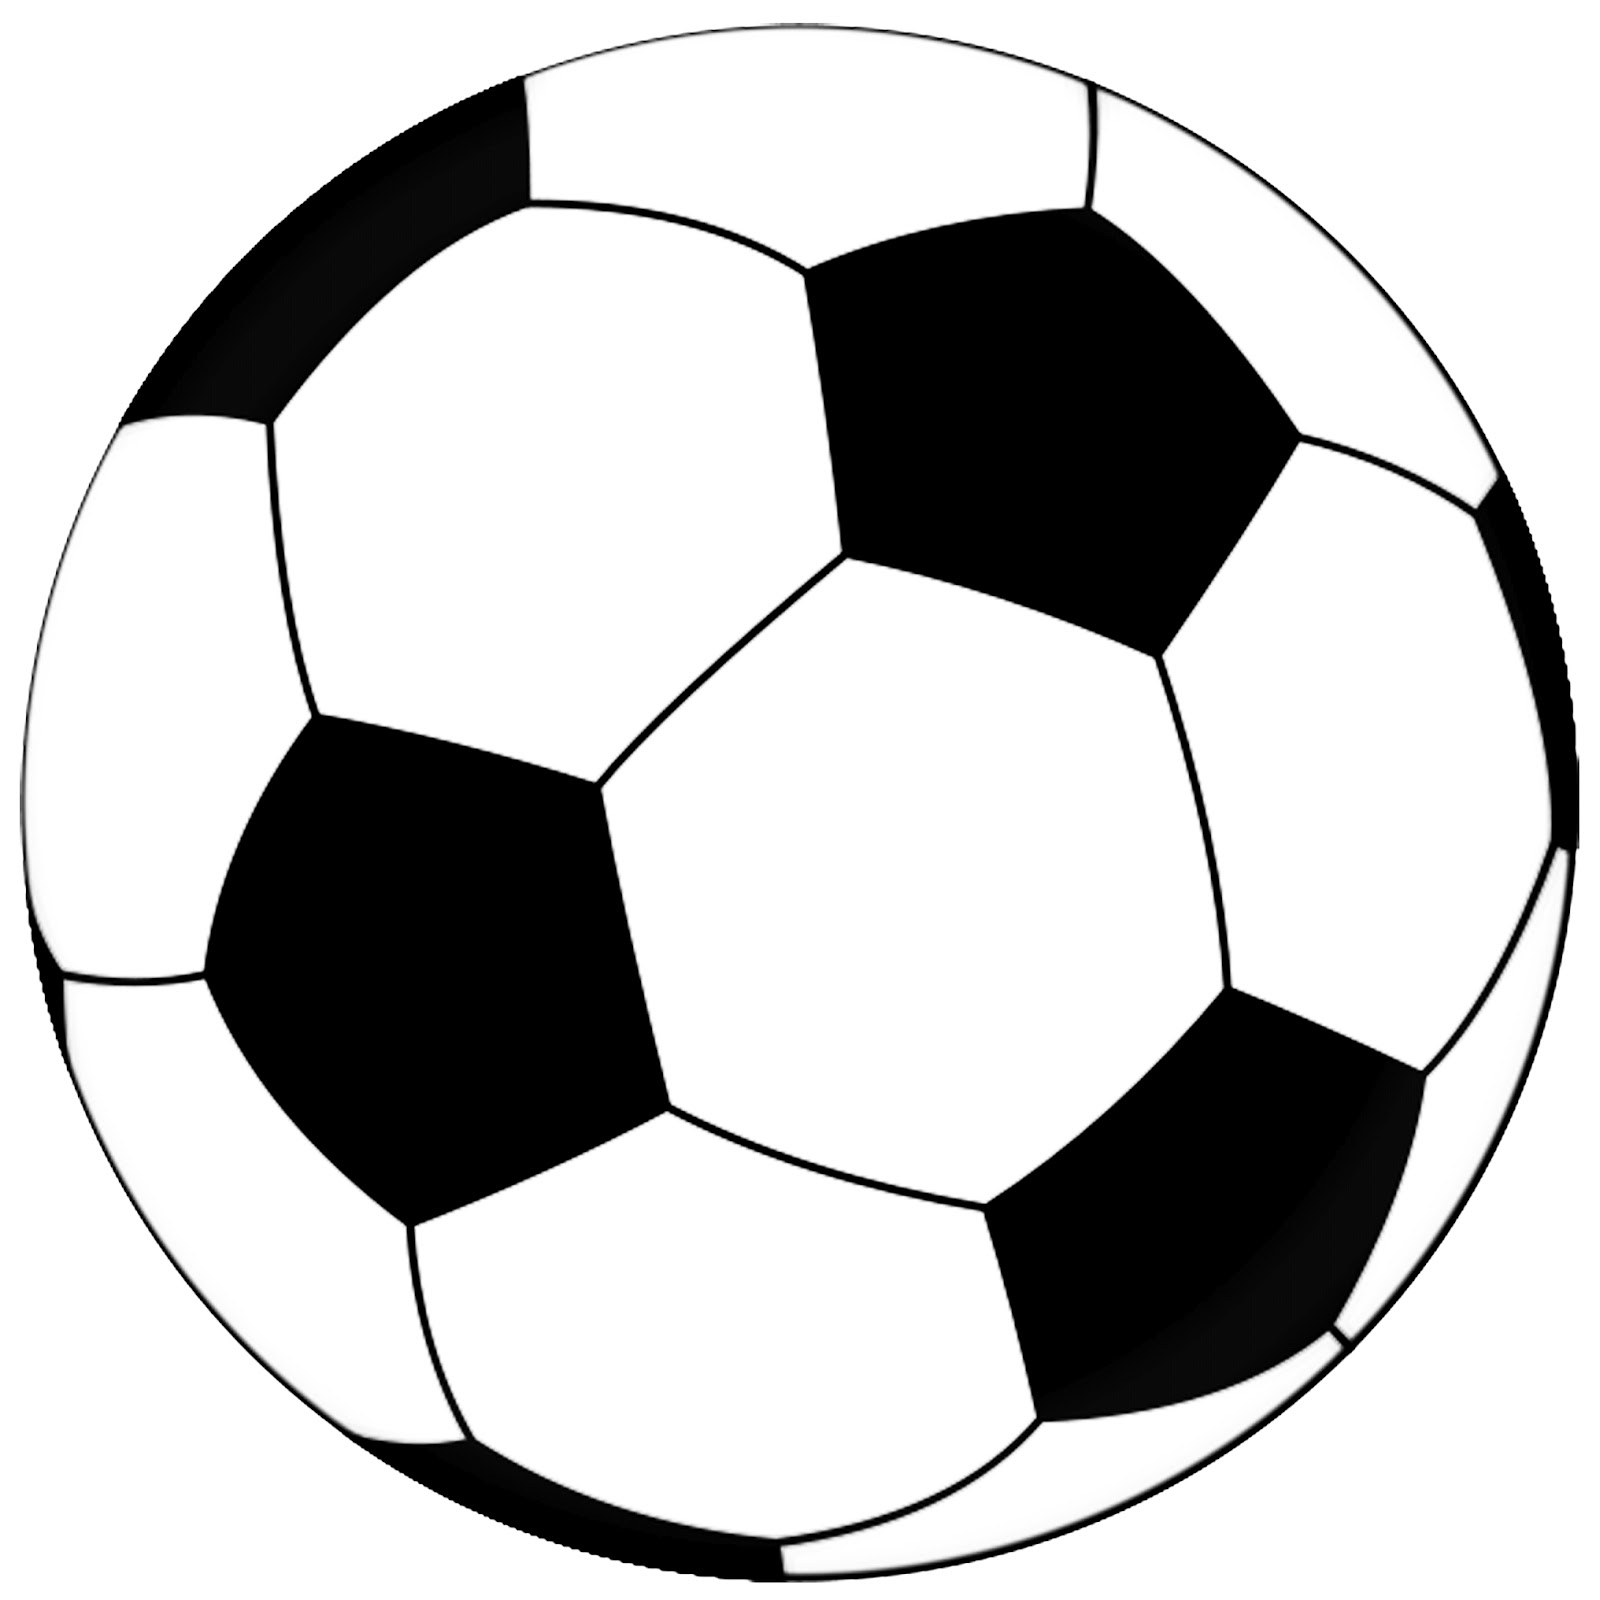 5 Images of Soccer Ball Template Printable